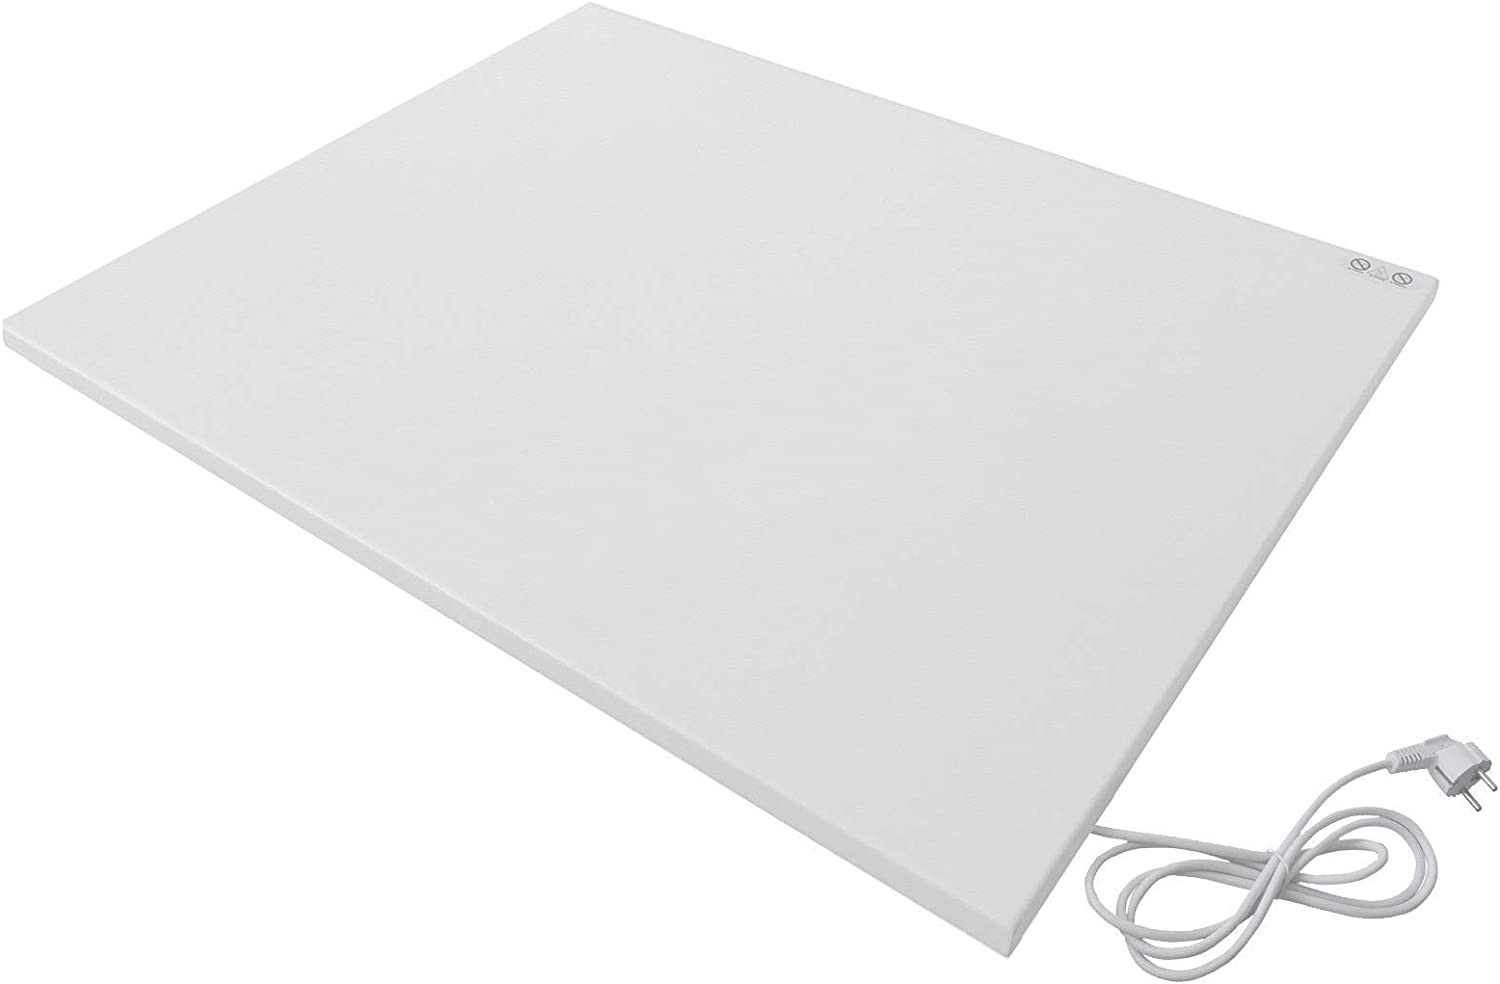 Ginvy Far Infrared Carbon Crystal Heating Panel 450W with ErP Lot20 CE IP65 RoHs Certs